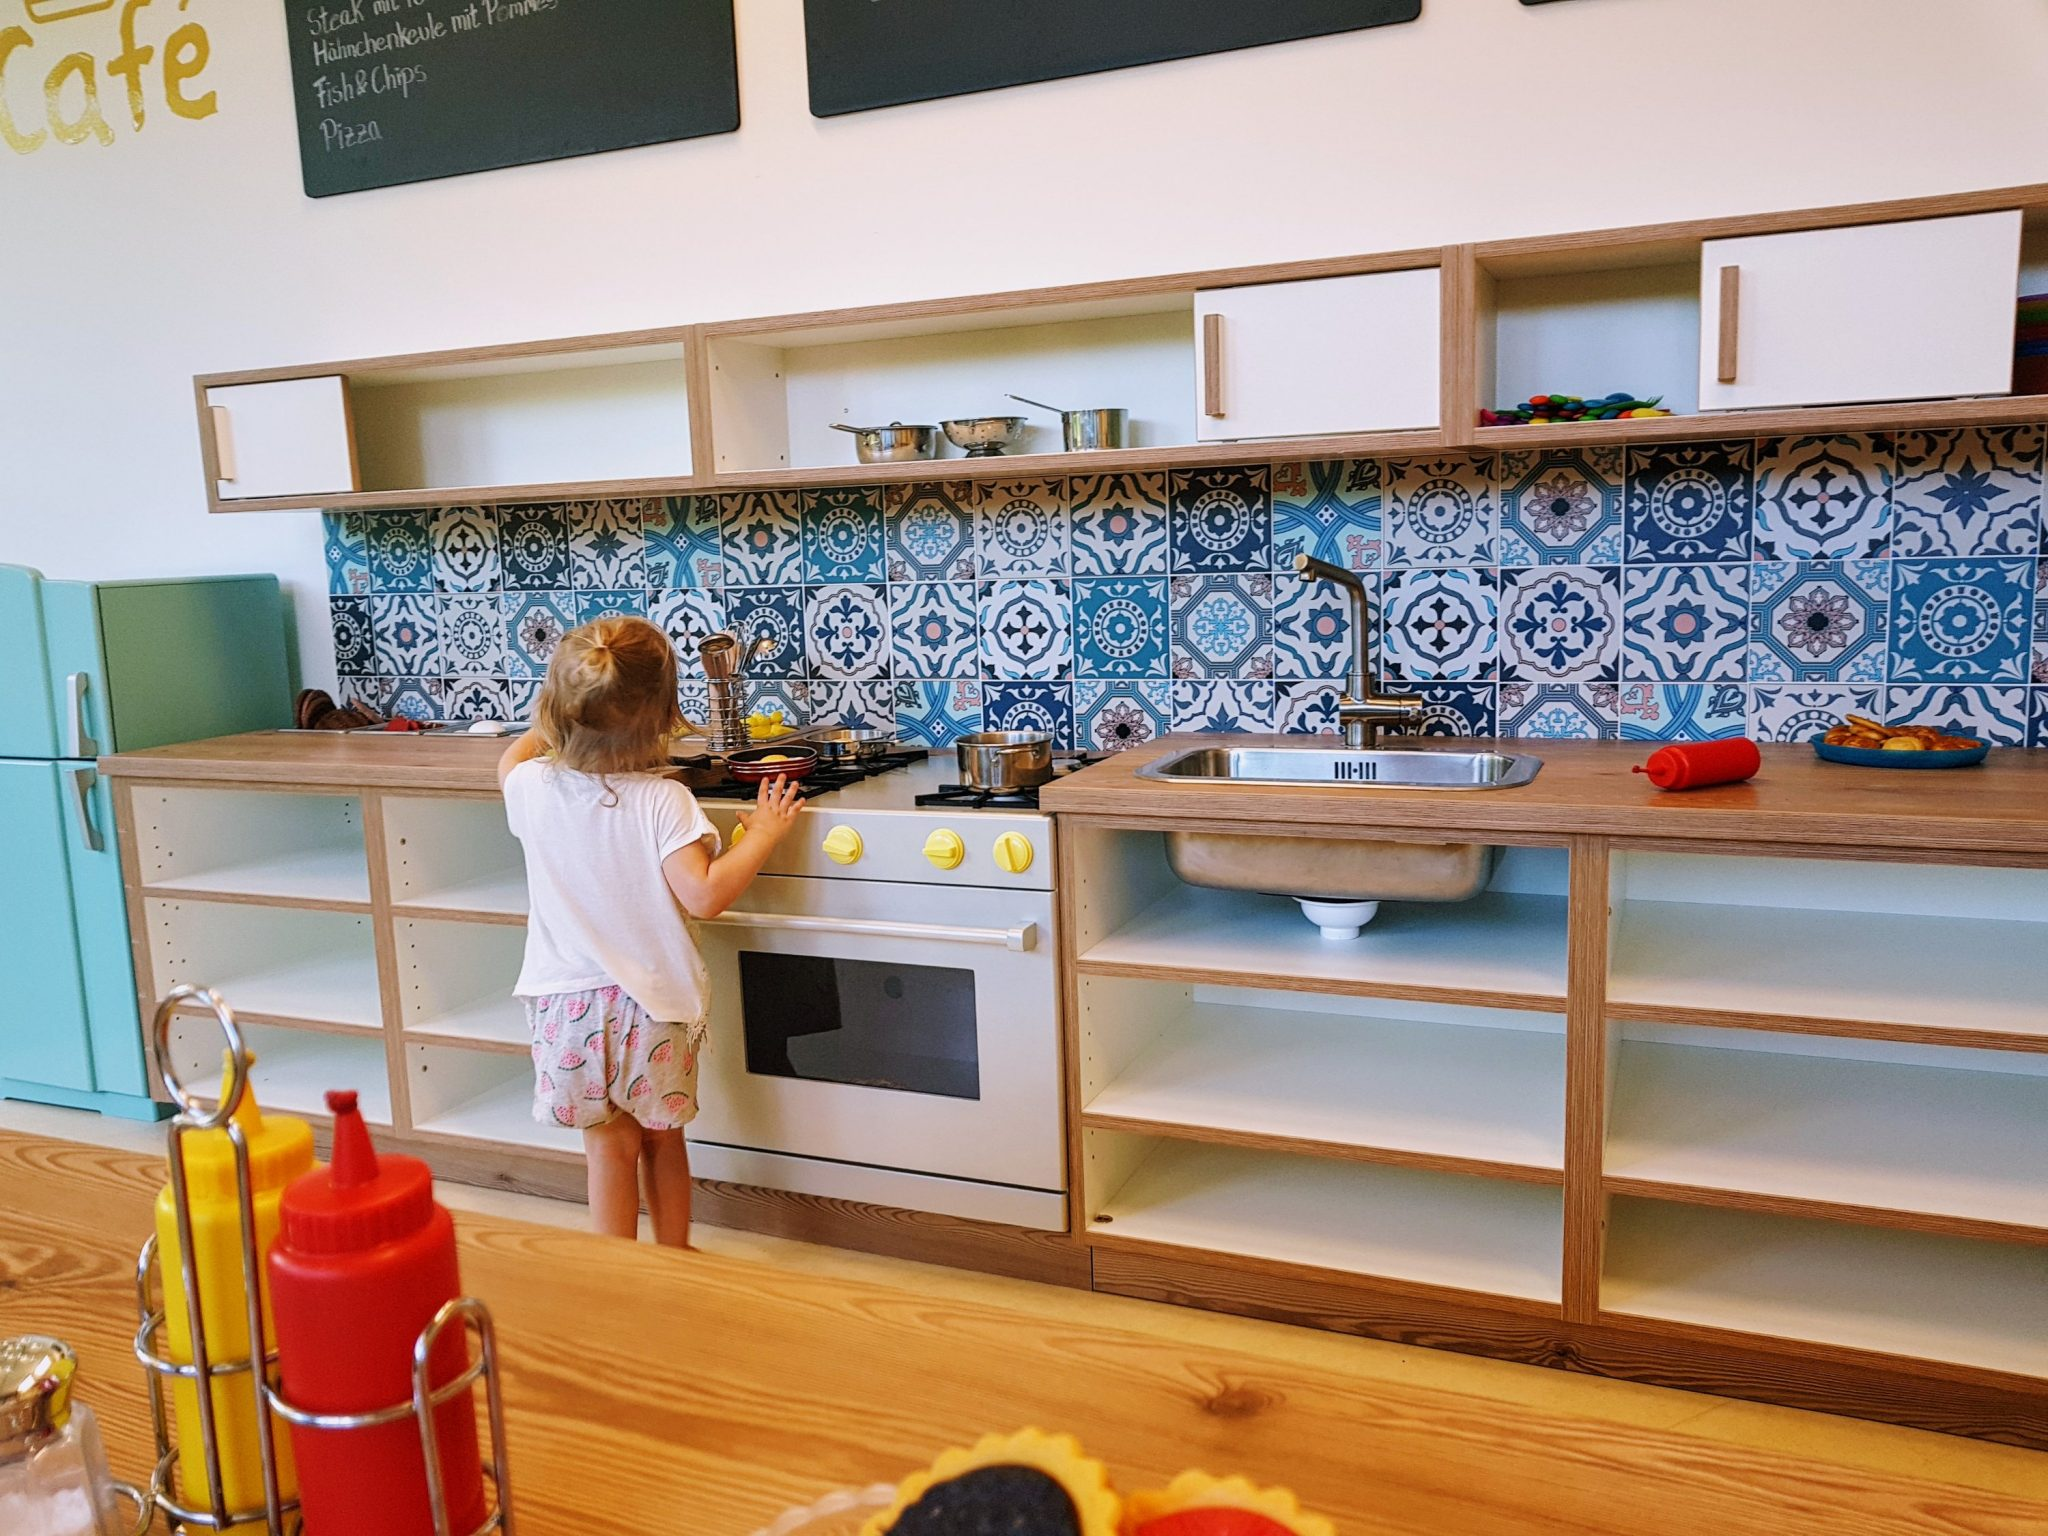 Kids at work play kitchen Hamburg with a Toddler | Ettie and Me